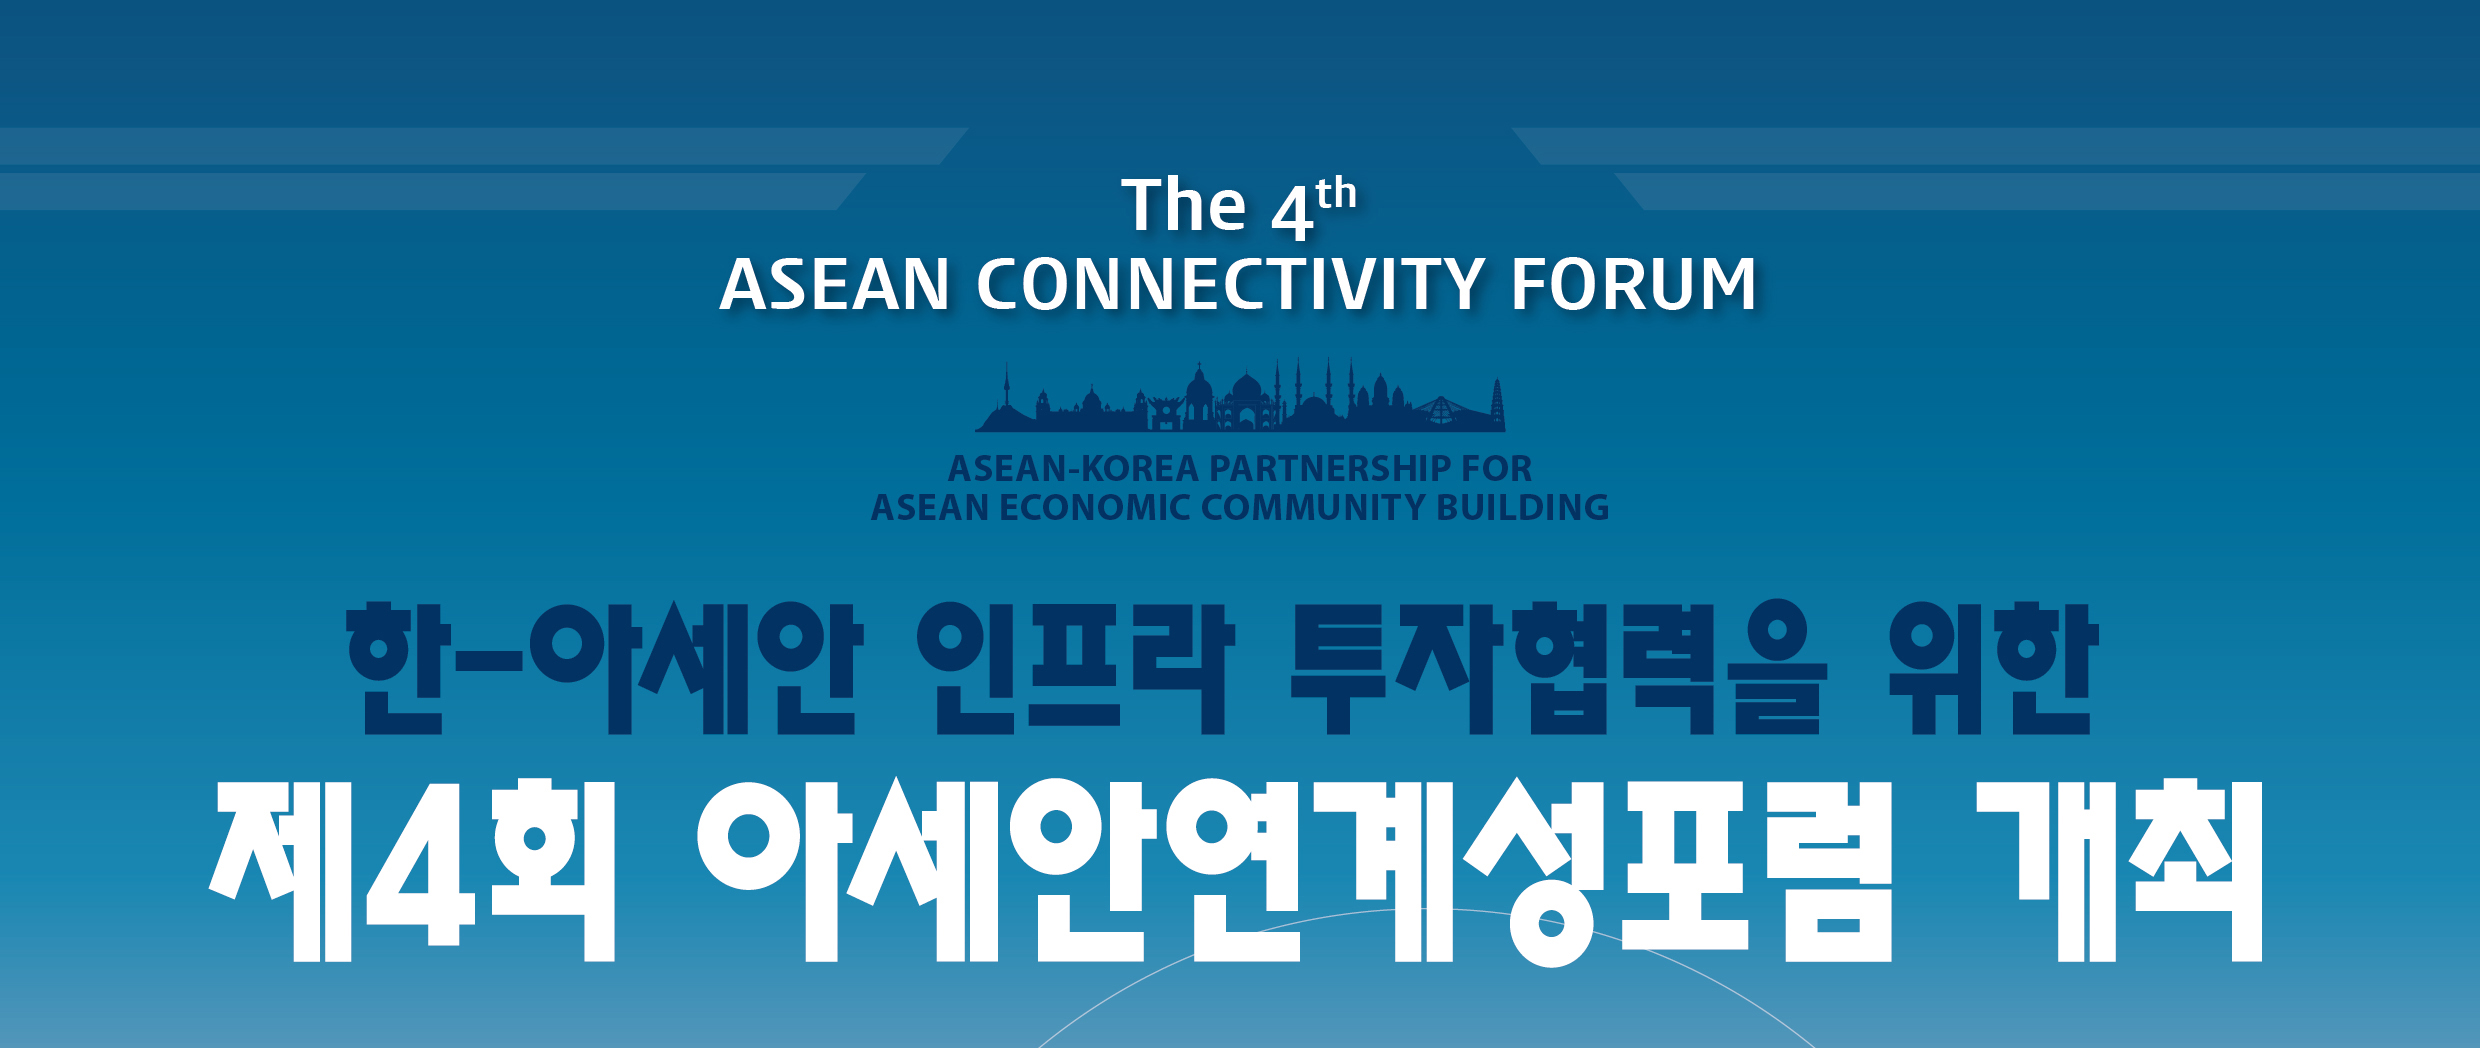 The 4th ASEAN Connectivity Forum